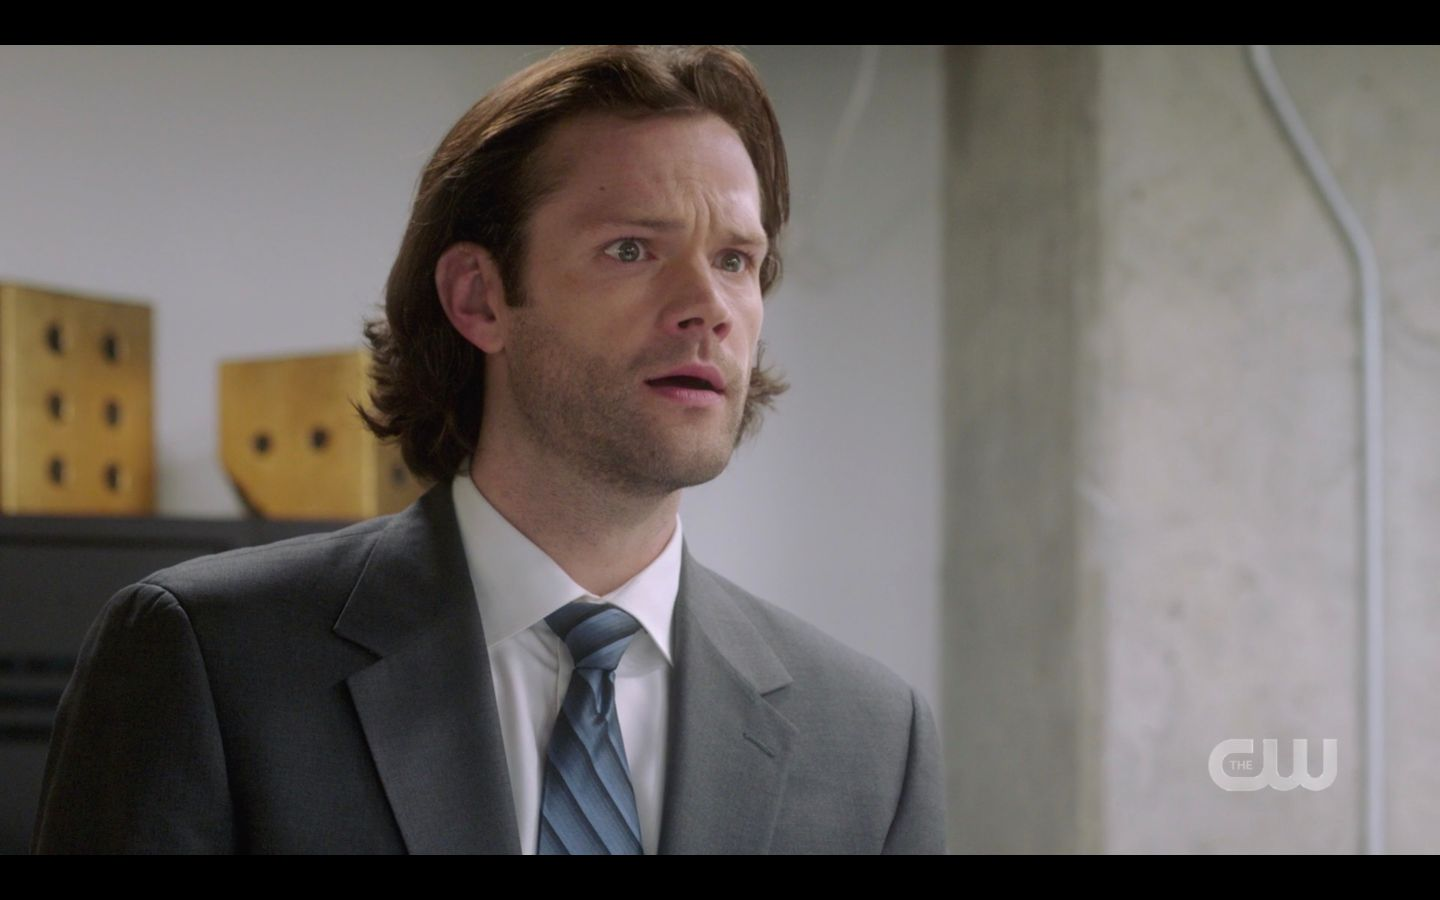 Sam Winchester suited up with Dean in office SPN 14.20